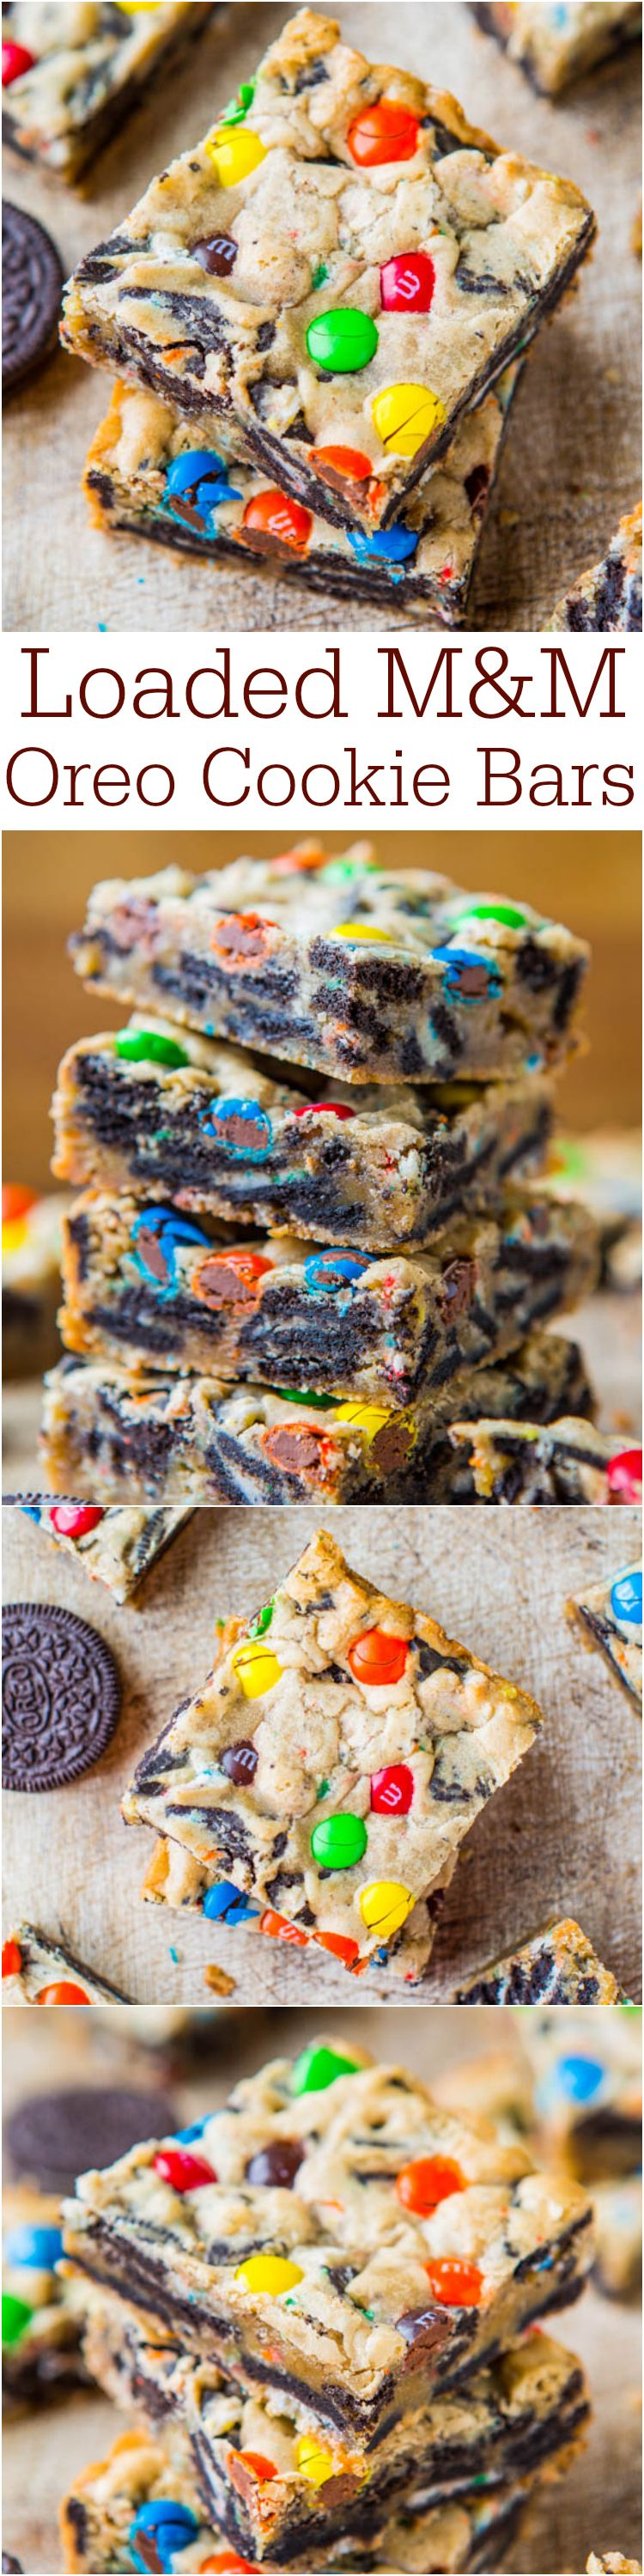 Loaded M&M Oreo Cookie Bars - Stuffed to the max with M&Ms and Oreos! Easy, no-mixer recipe that's ready in 30 minutes! Always a hit! (Pinned 500k times & on the cover of Taste of Home Magazine!)